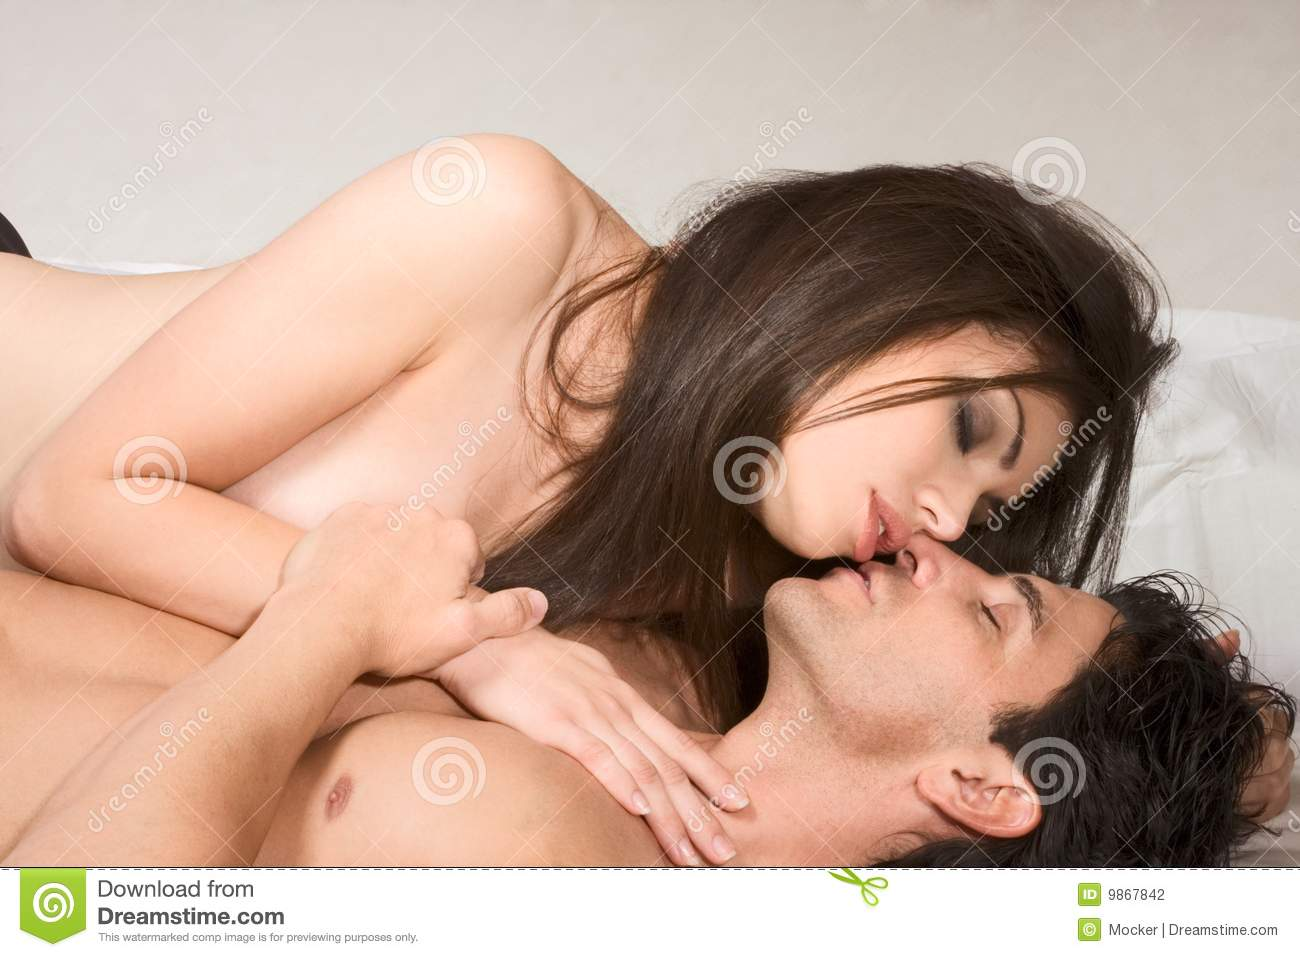 Nude women in sexual positions smut pictures